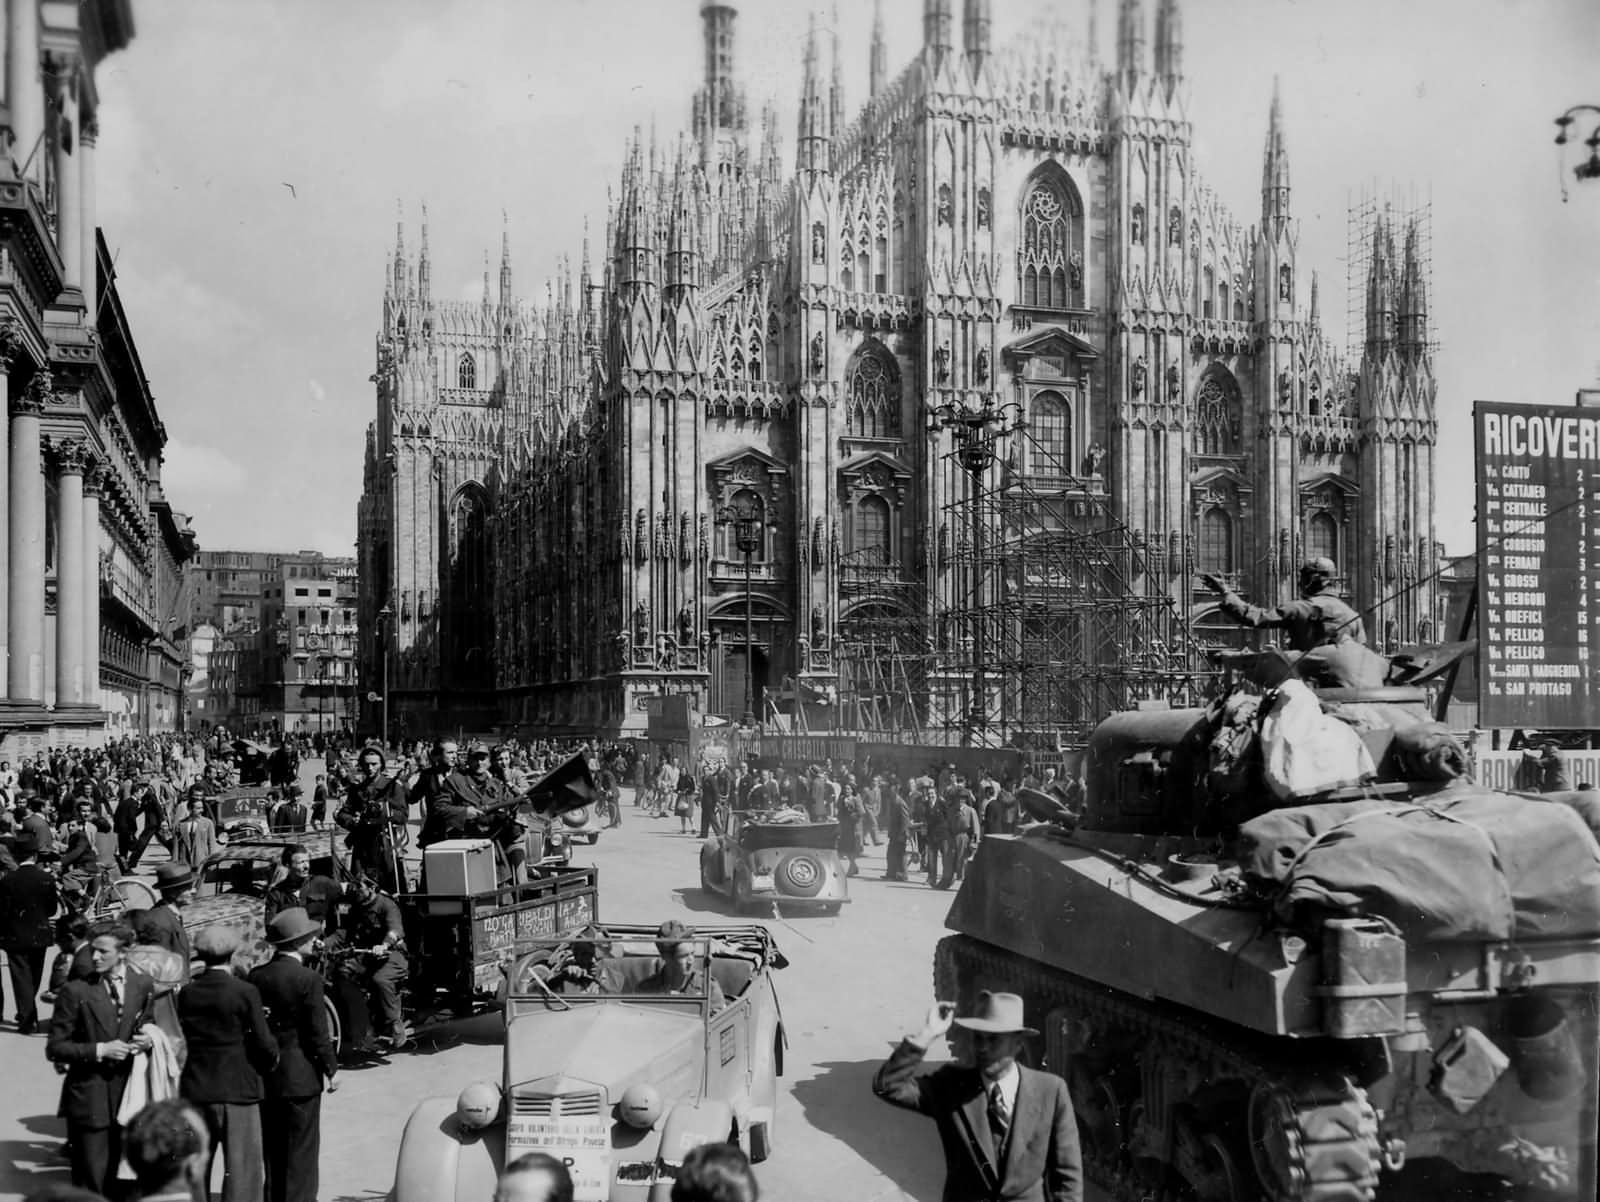 1st_armored_division_M4_sherman_in_piazza_del_duoma_Milan_Italy_1945